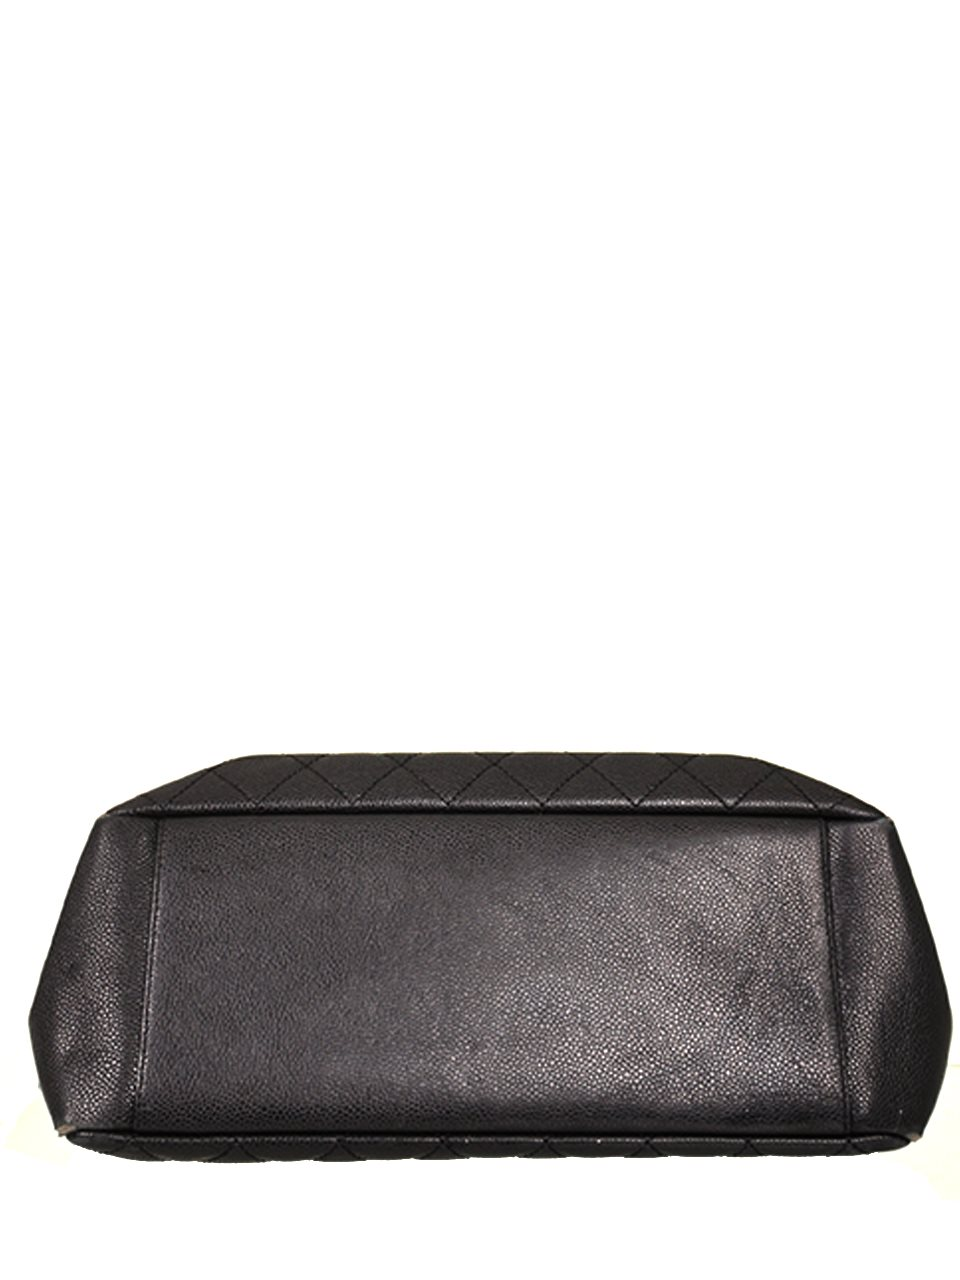 Chanel - Quilted Caviar Leather Grand Shopper Shoulder Bag - Image 3 of 4